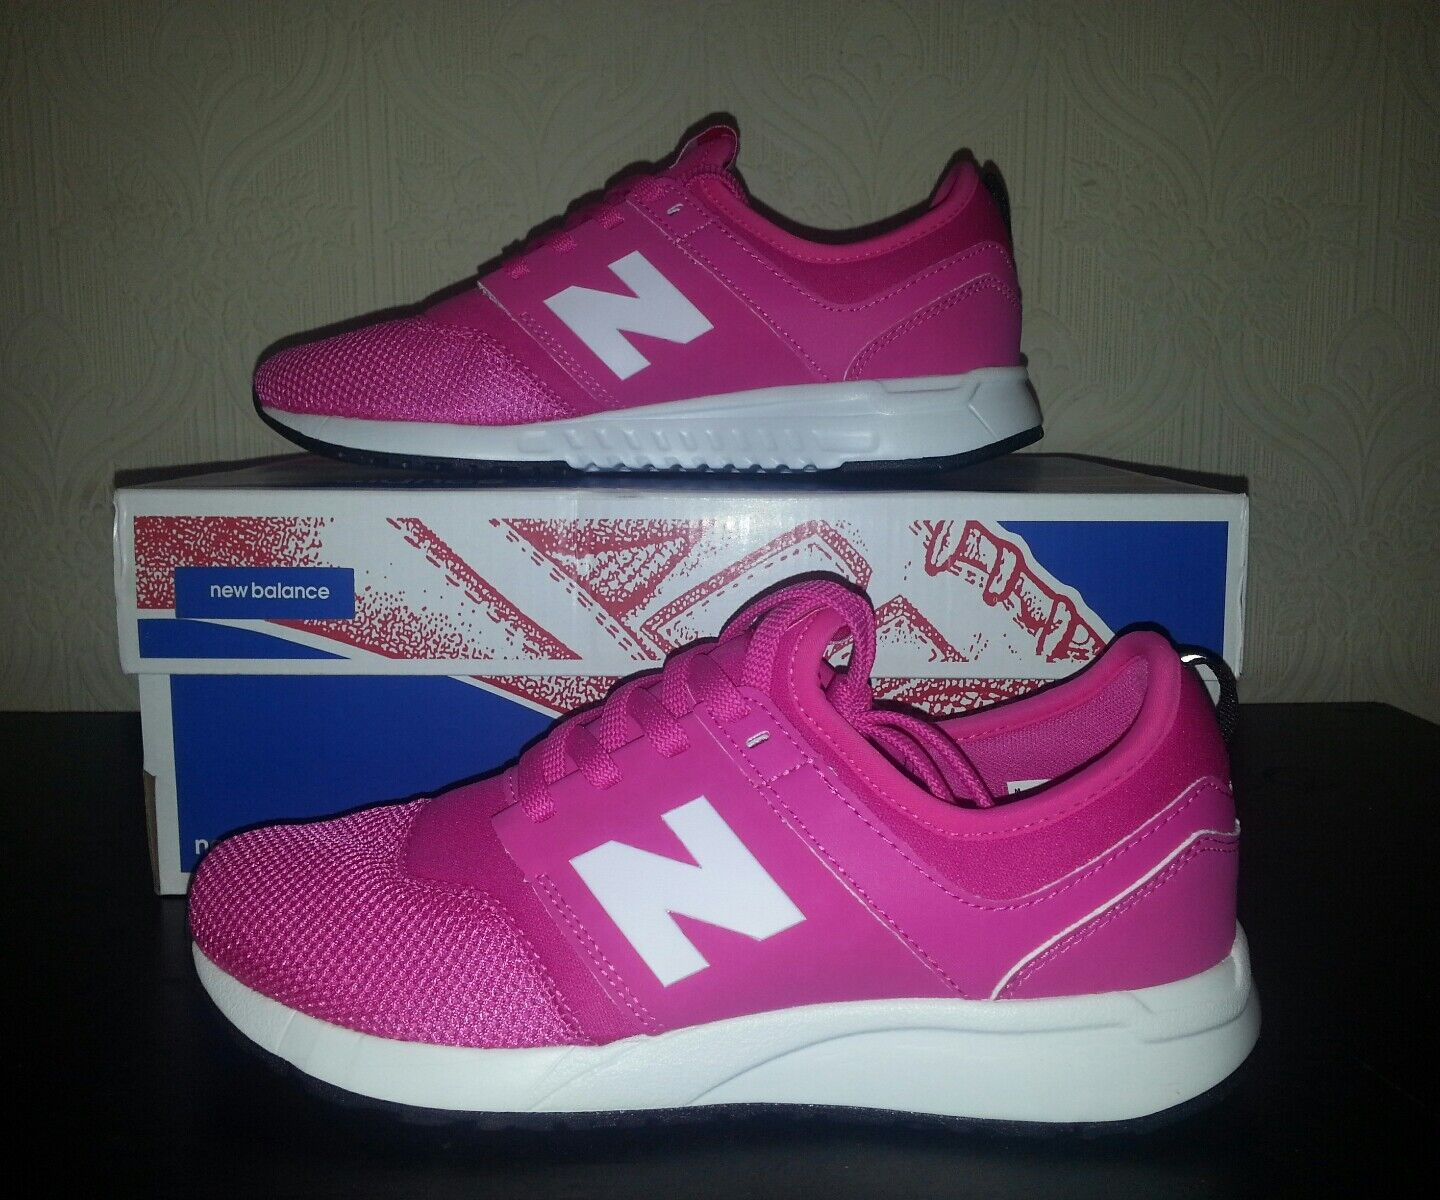 New balance used once Taille UK 5.5